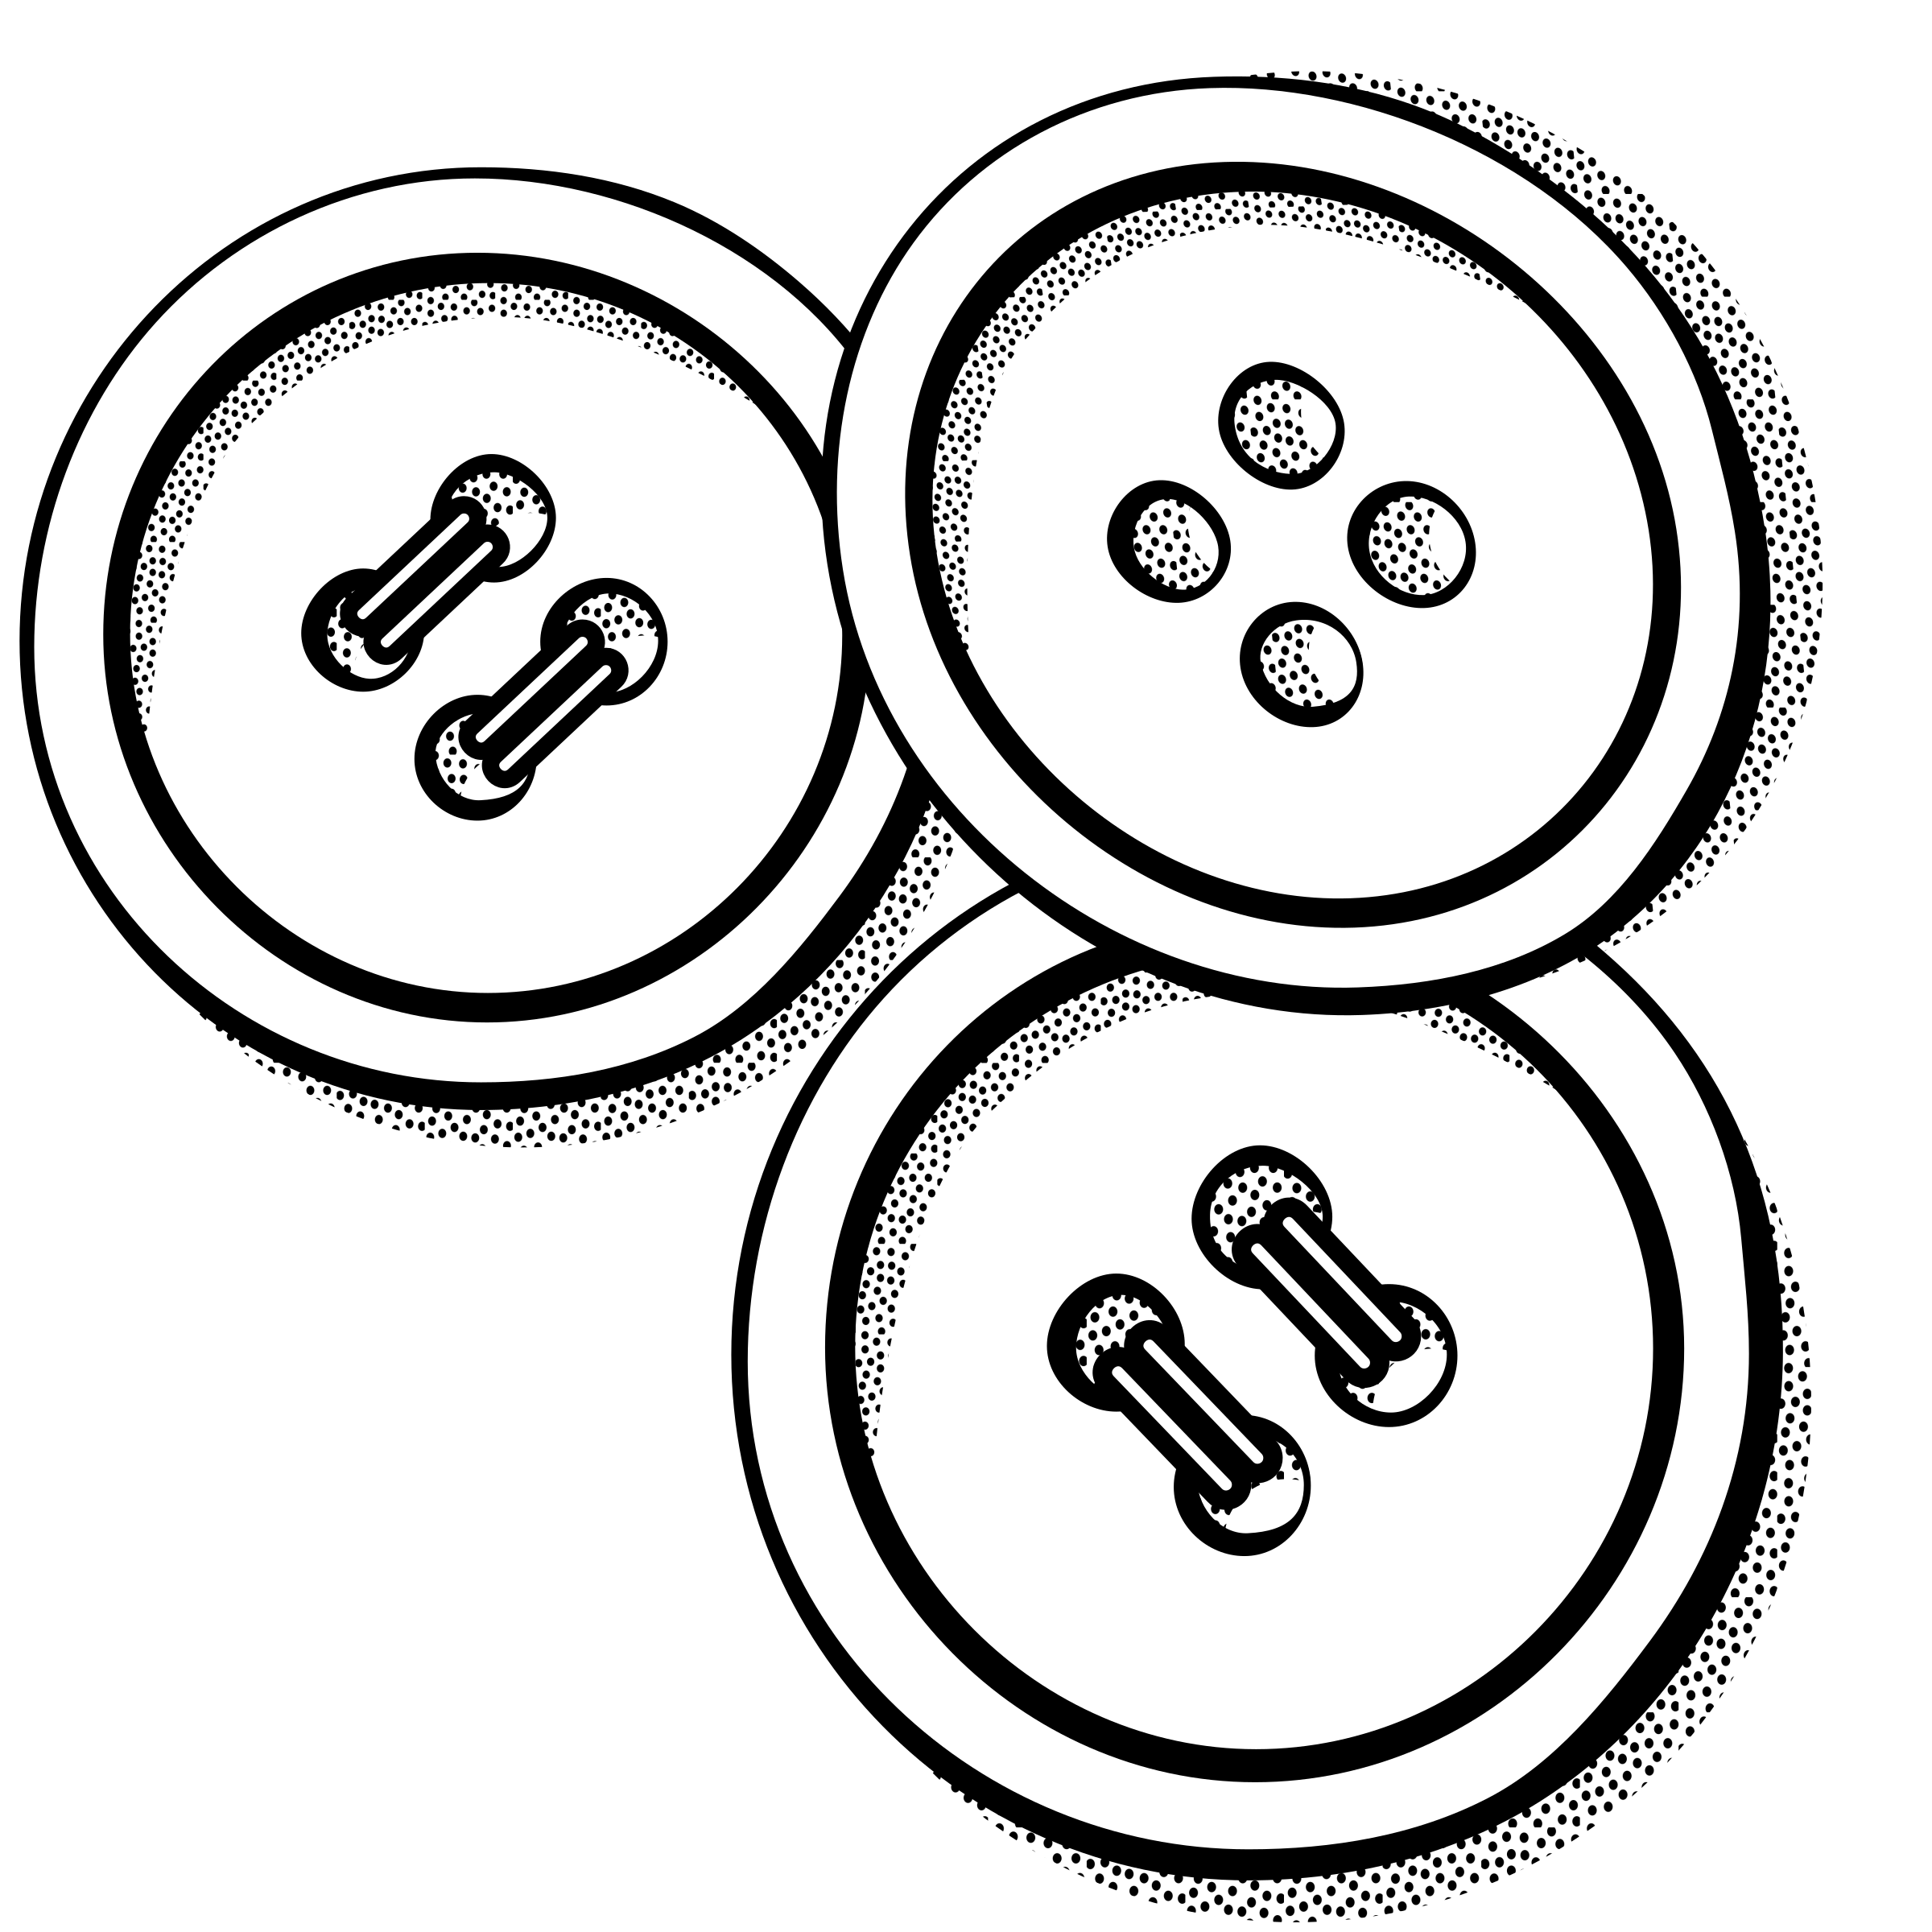 Clip buttons clipart black and white. Lineart big image png